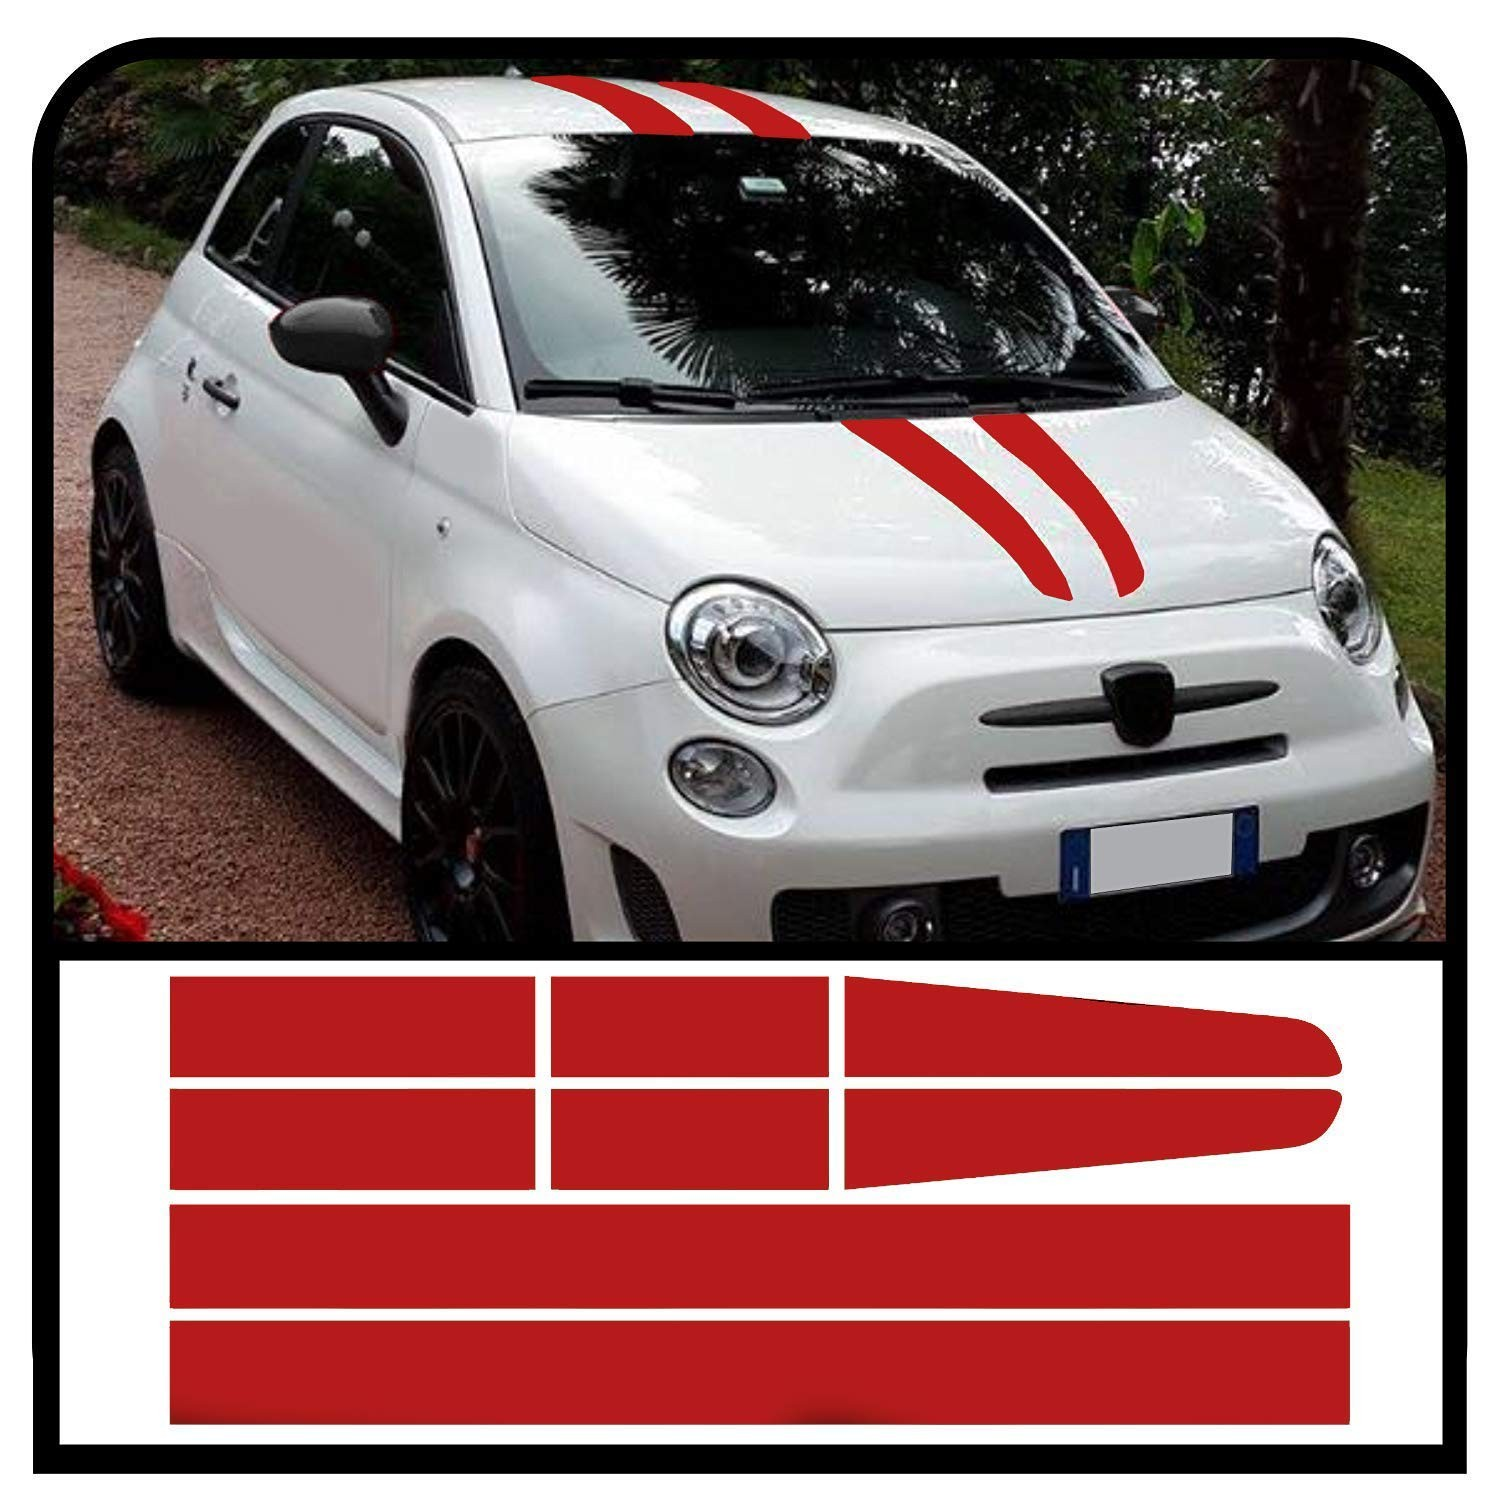 Adhesive Strips Bonnet Roof And Boot Lid Assetto Corse For Fiat 500 Stickers Decal Abarth